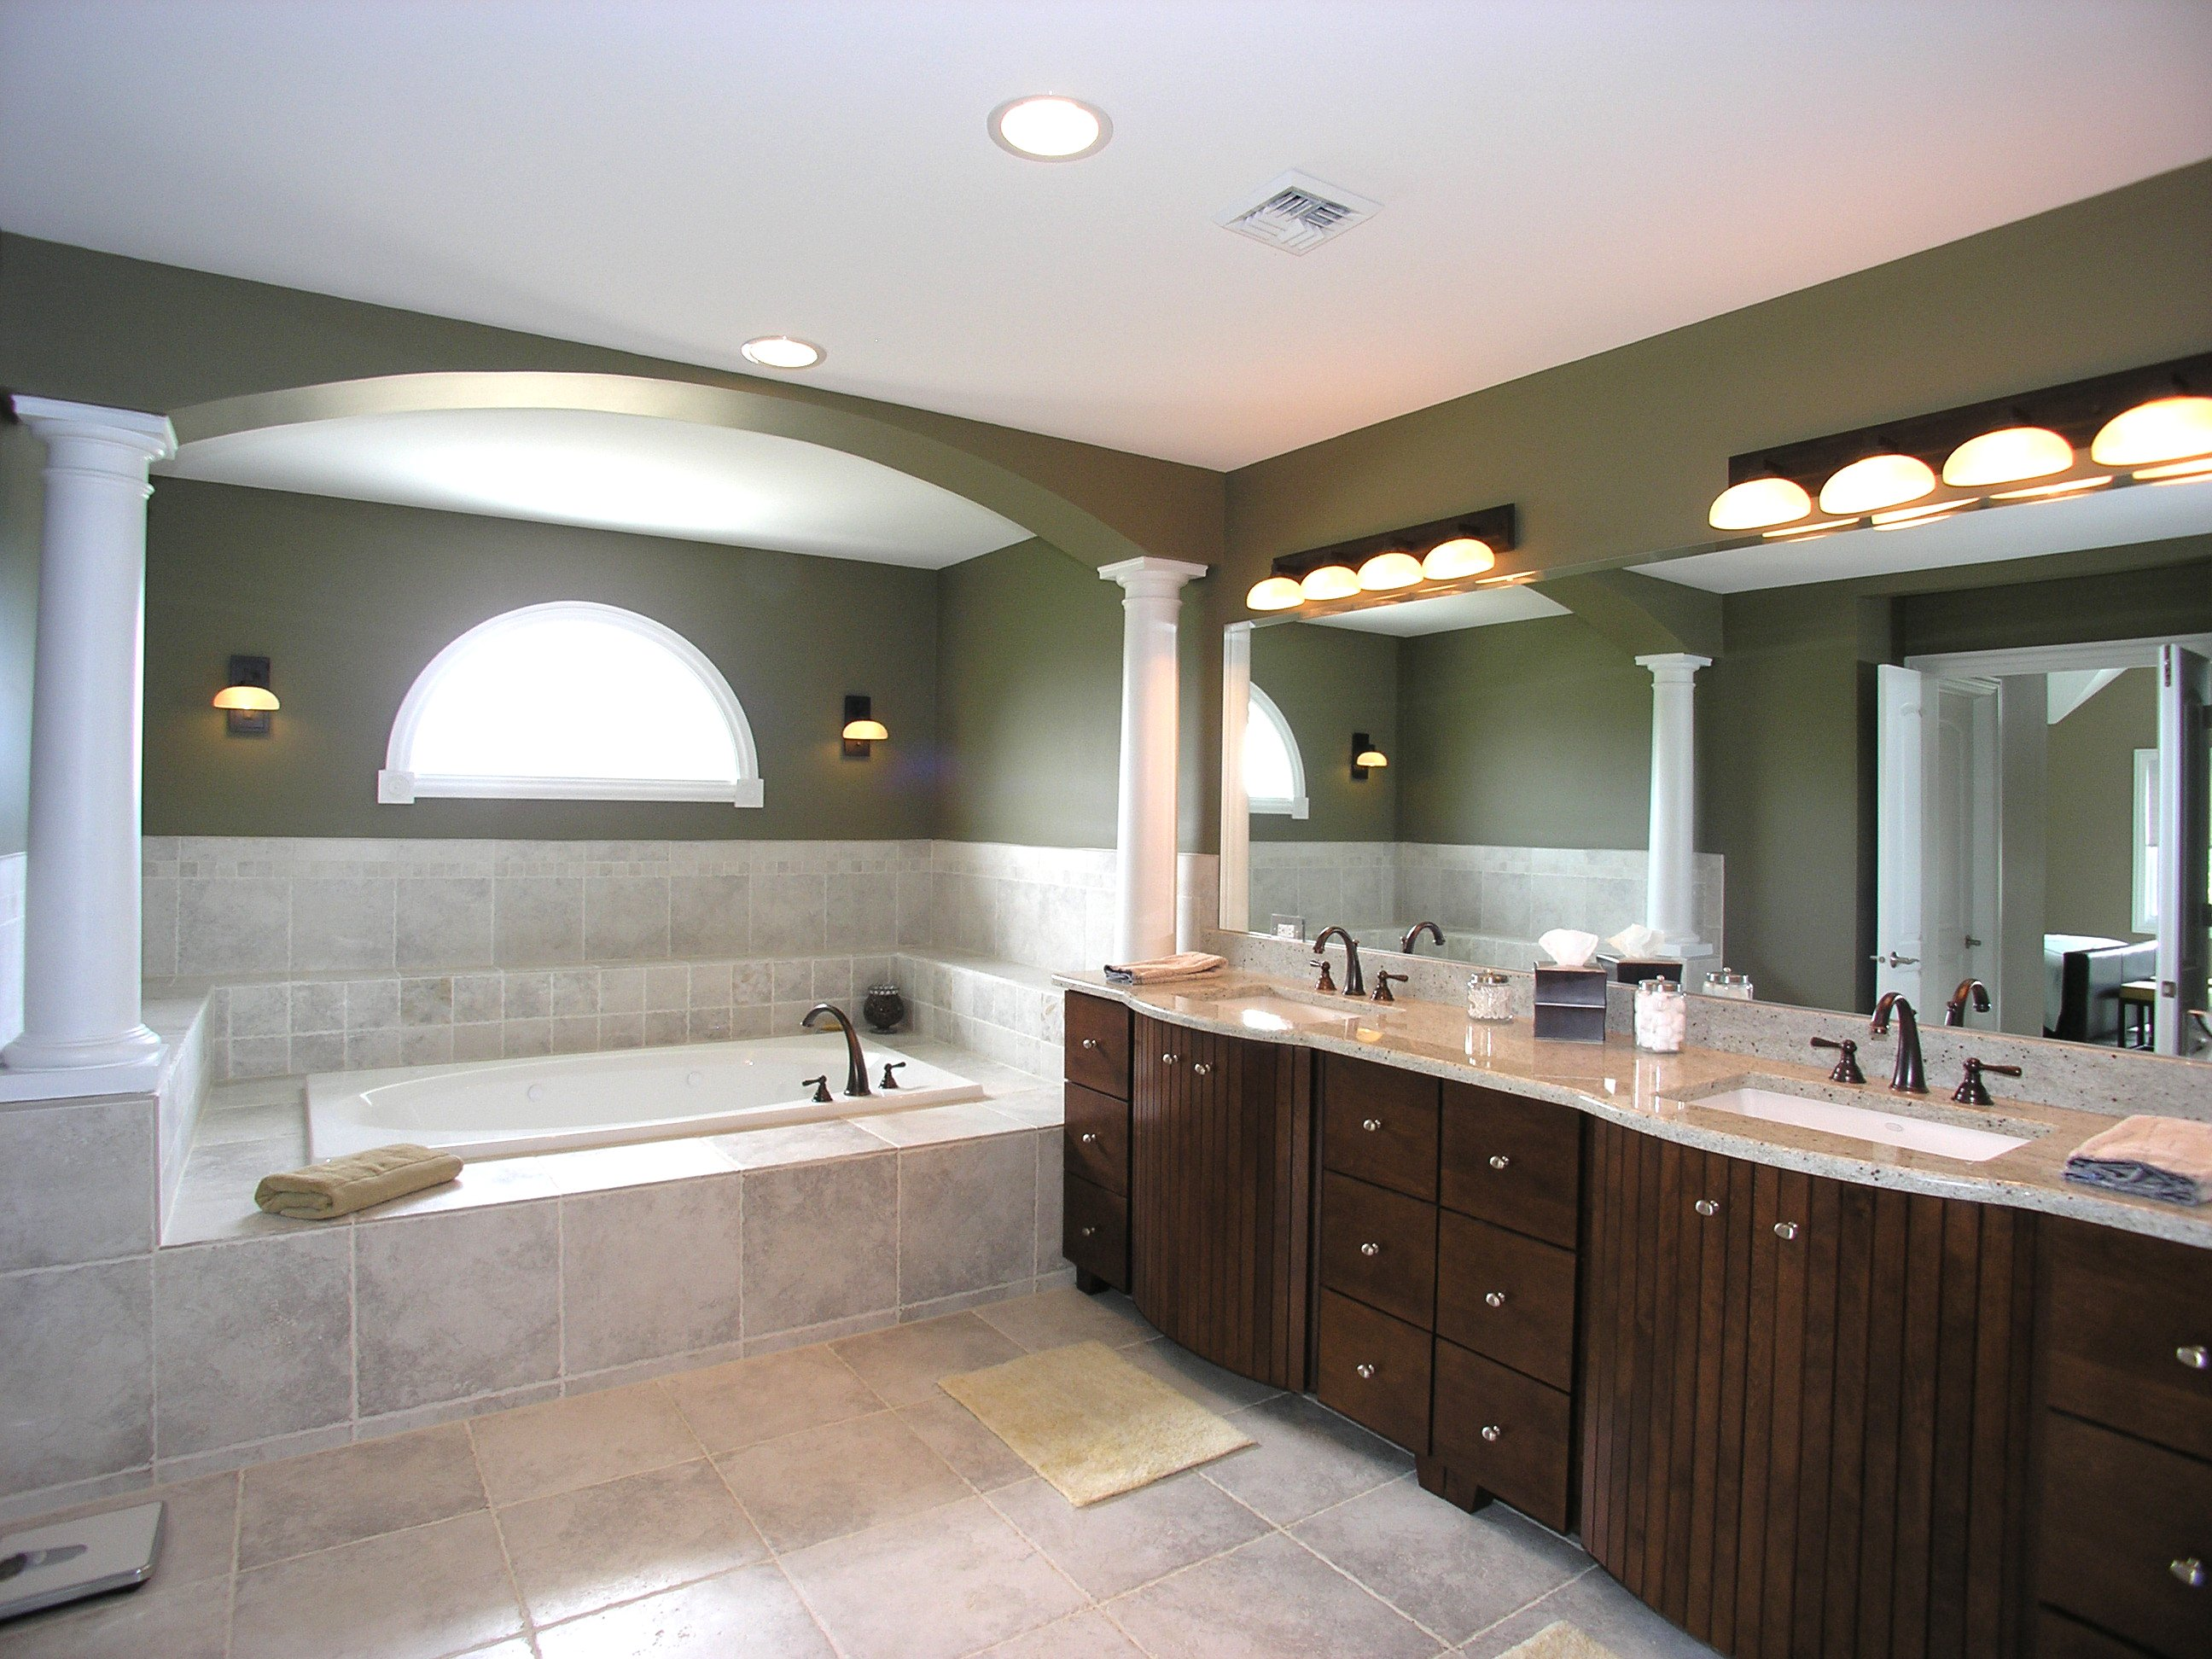 Bathroom Remodeling Supplies Advantages And Disadvantages Of Buying Your Bathroom Remodeling .